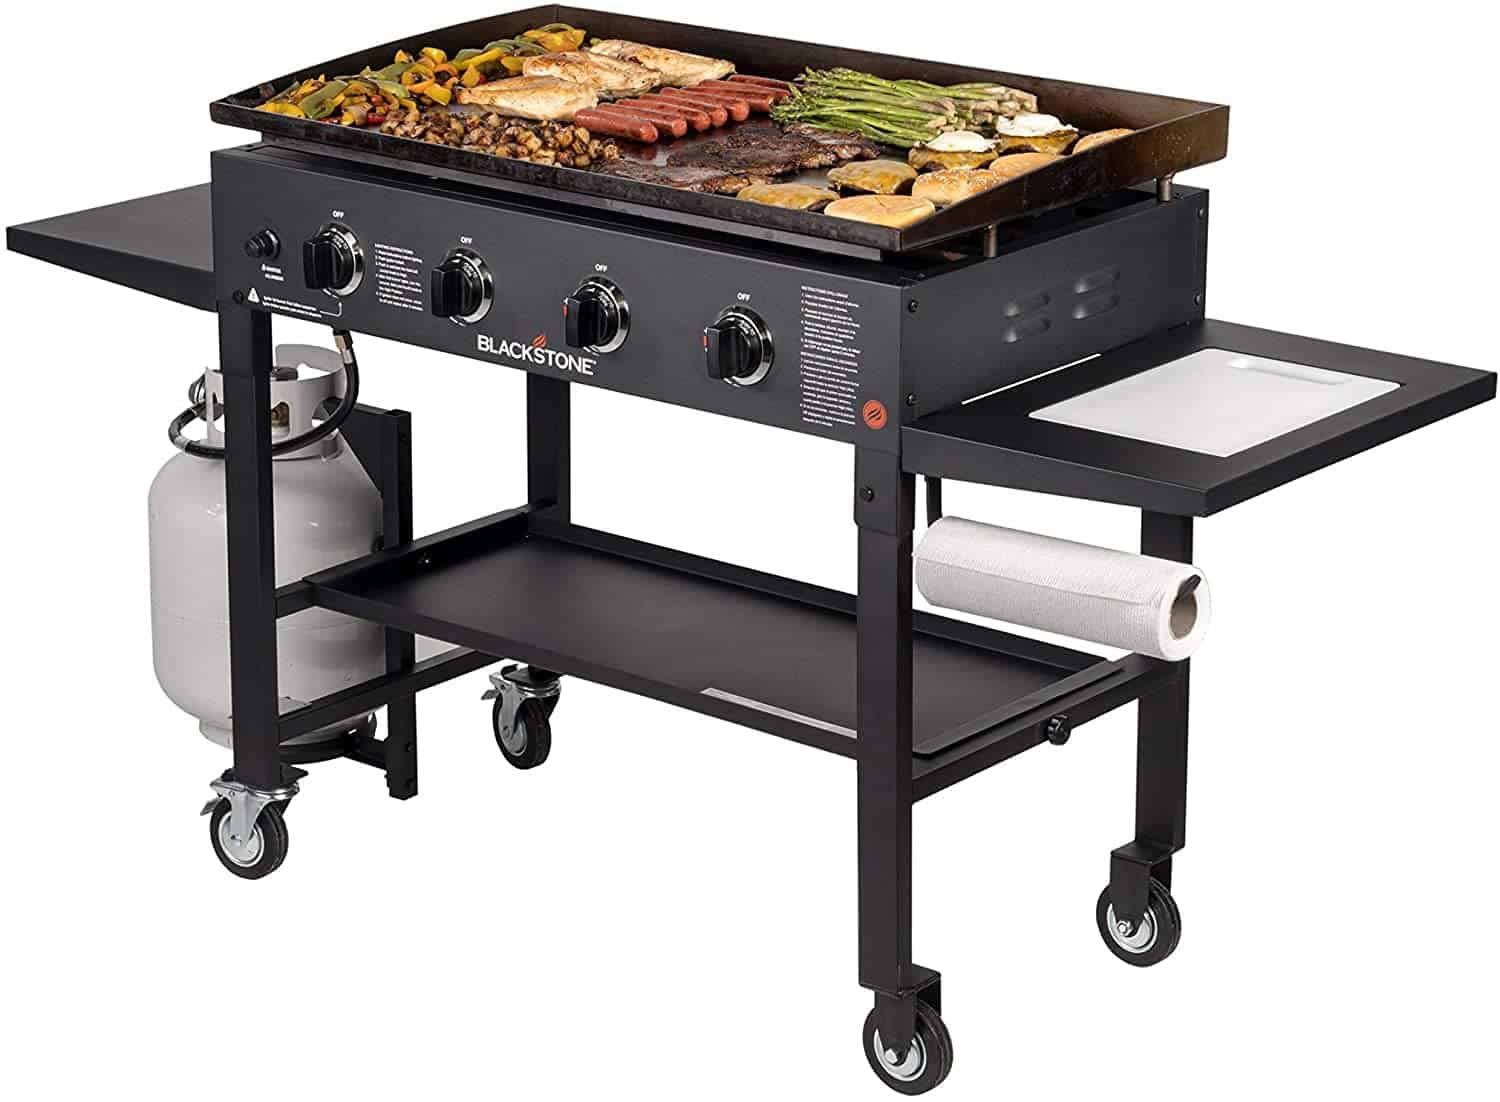 Best flat top grill for largescale cooking- Blackstone 36 inch Outdoor